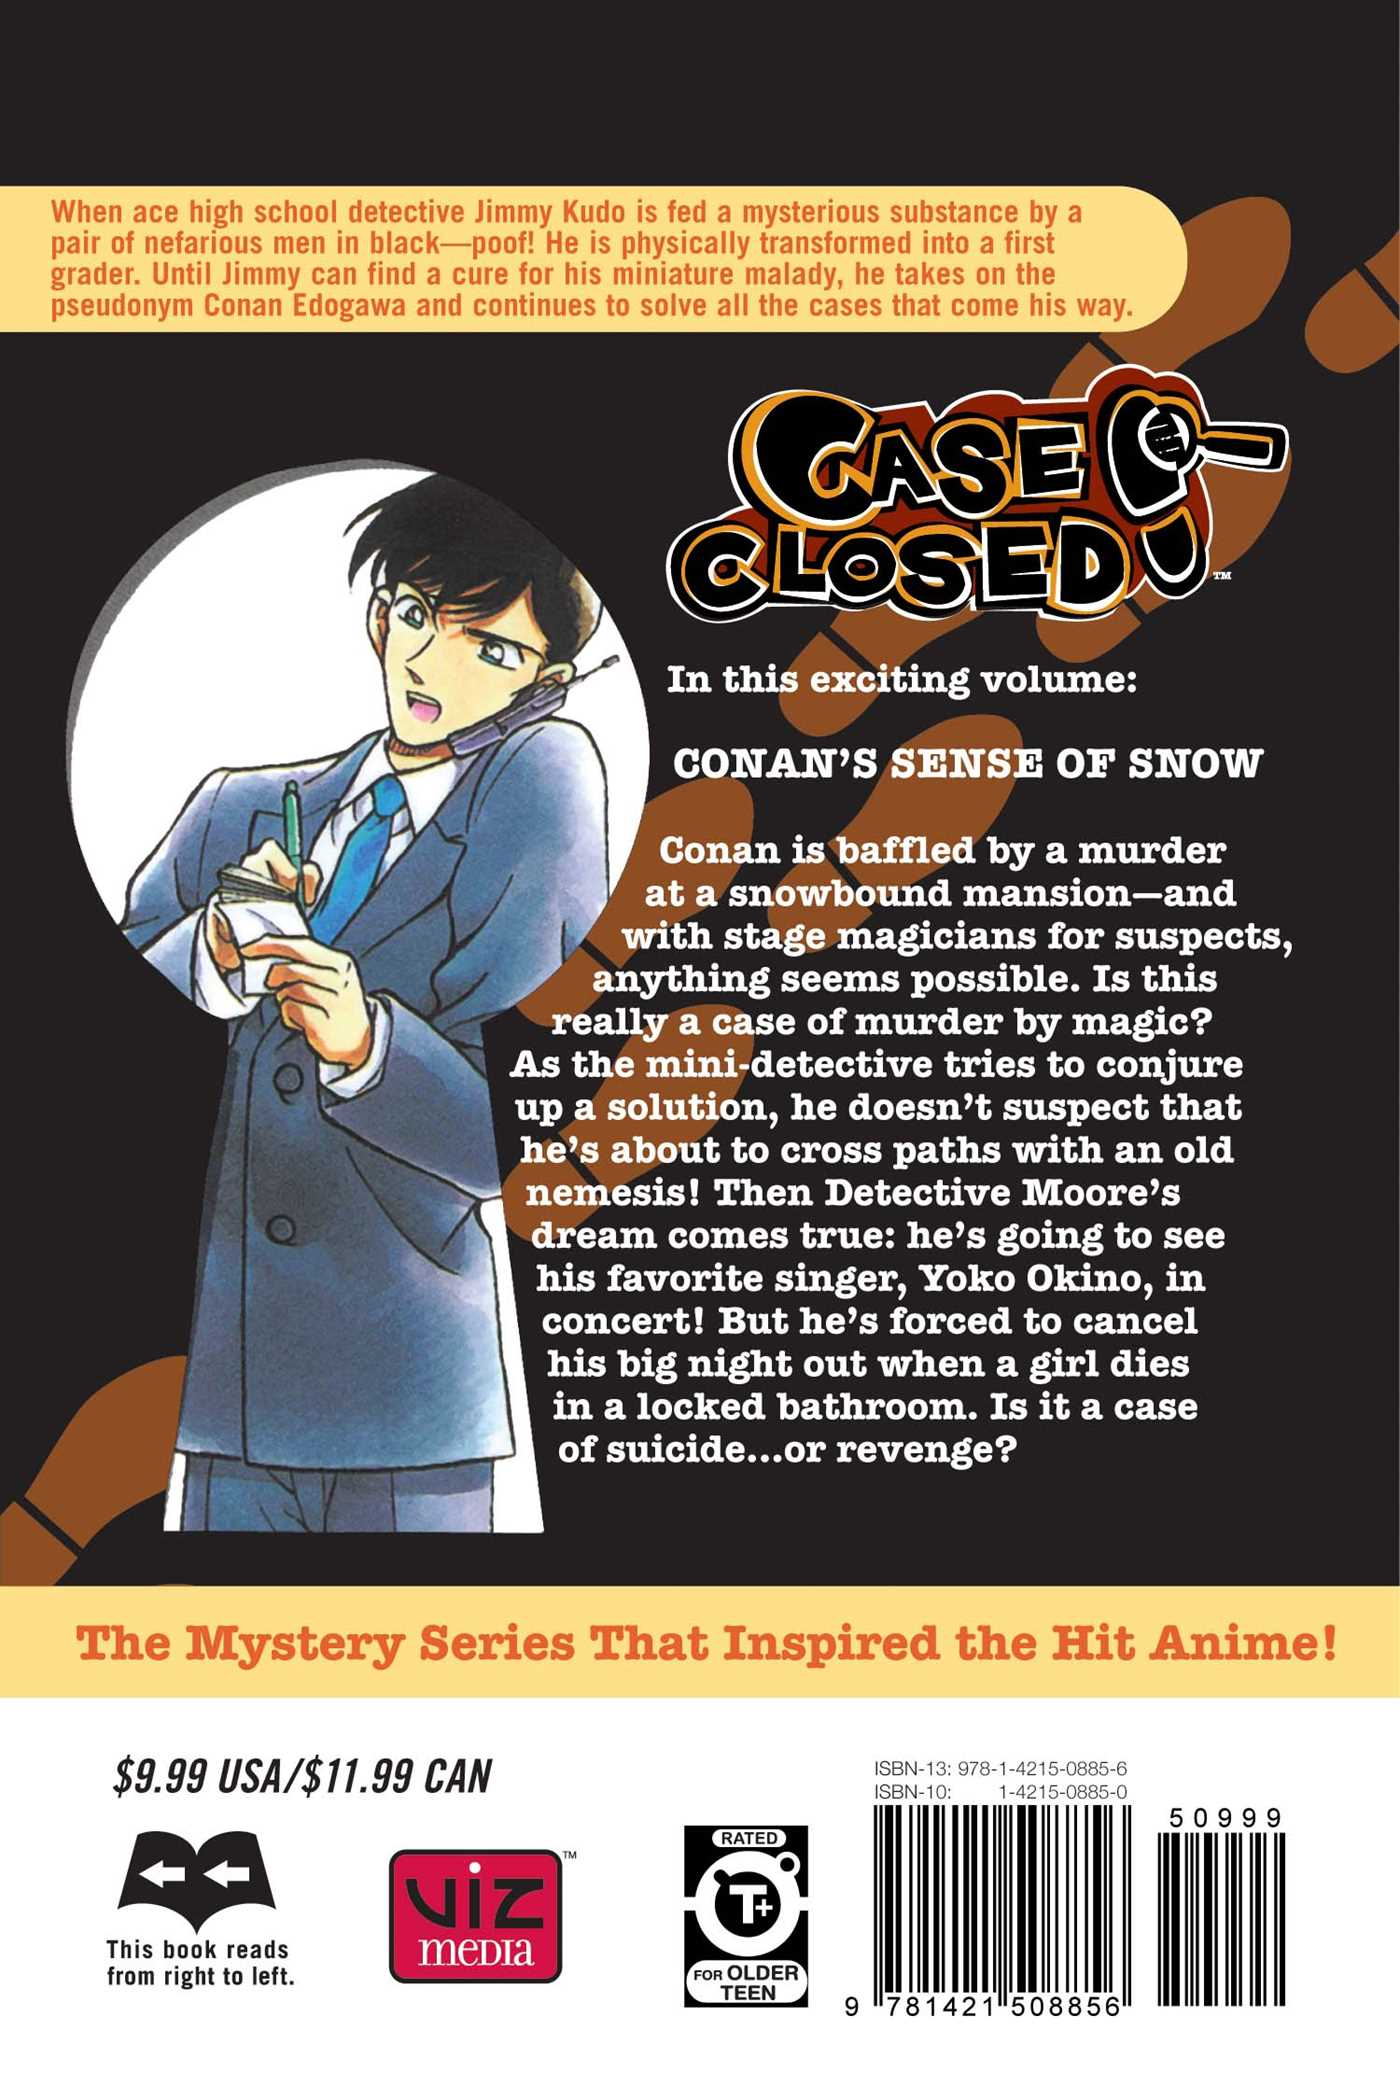 Case closed vol 20 9781421508856 hr back